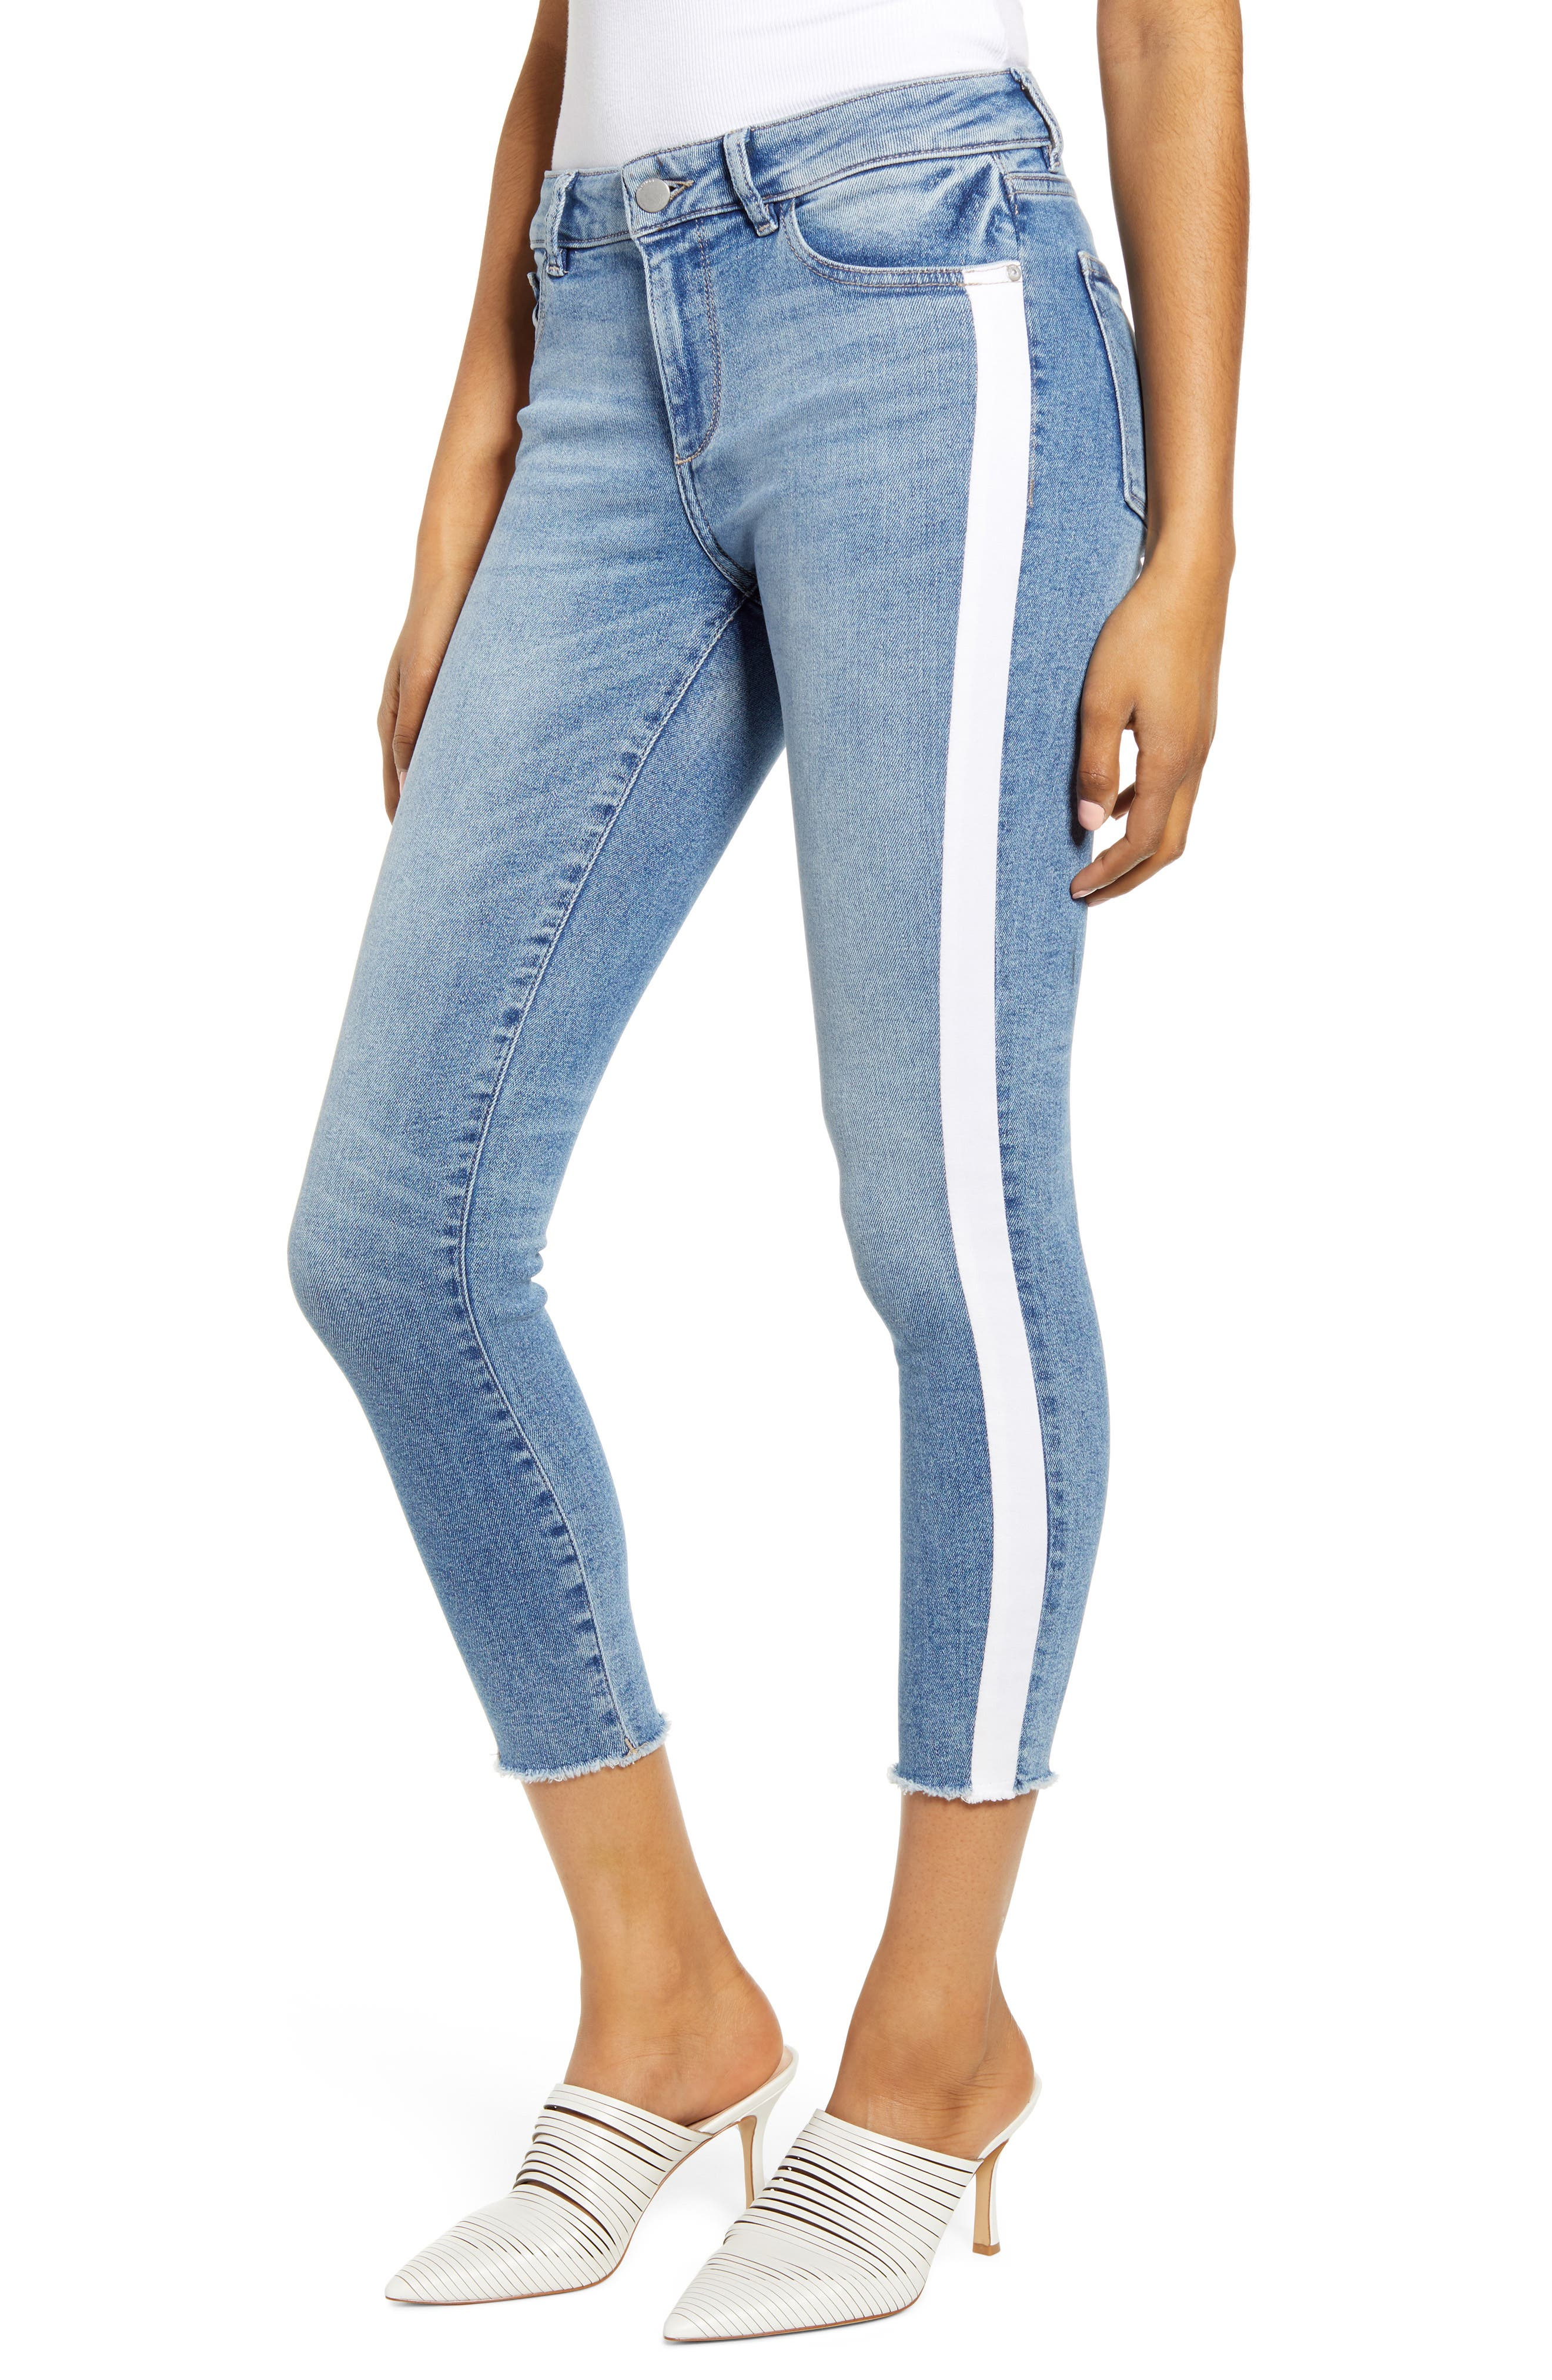 Image of DL1961 Florence Crop Mid-rise Instasculpt Skinny Jeans